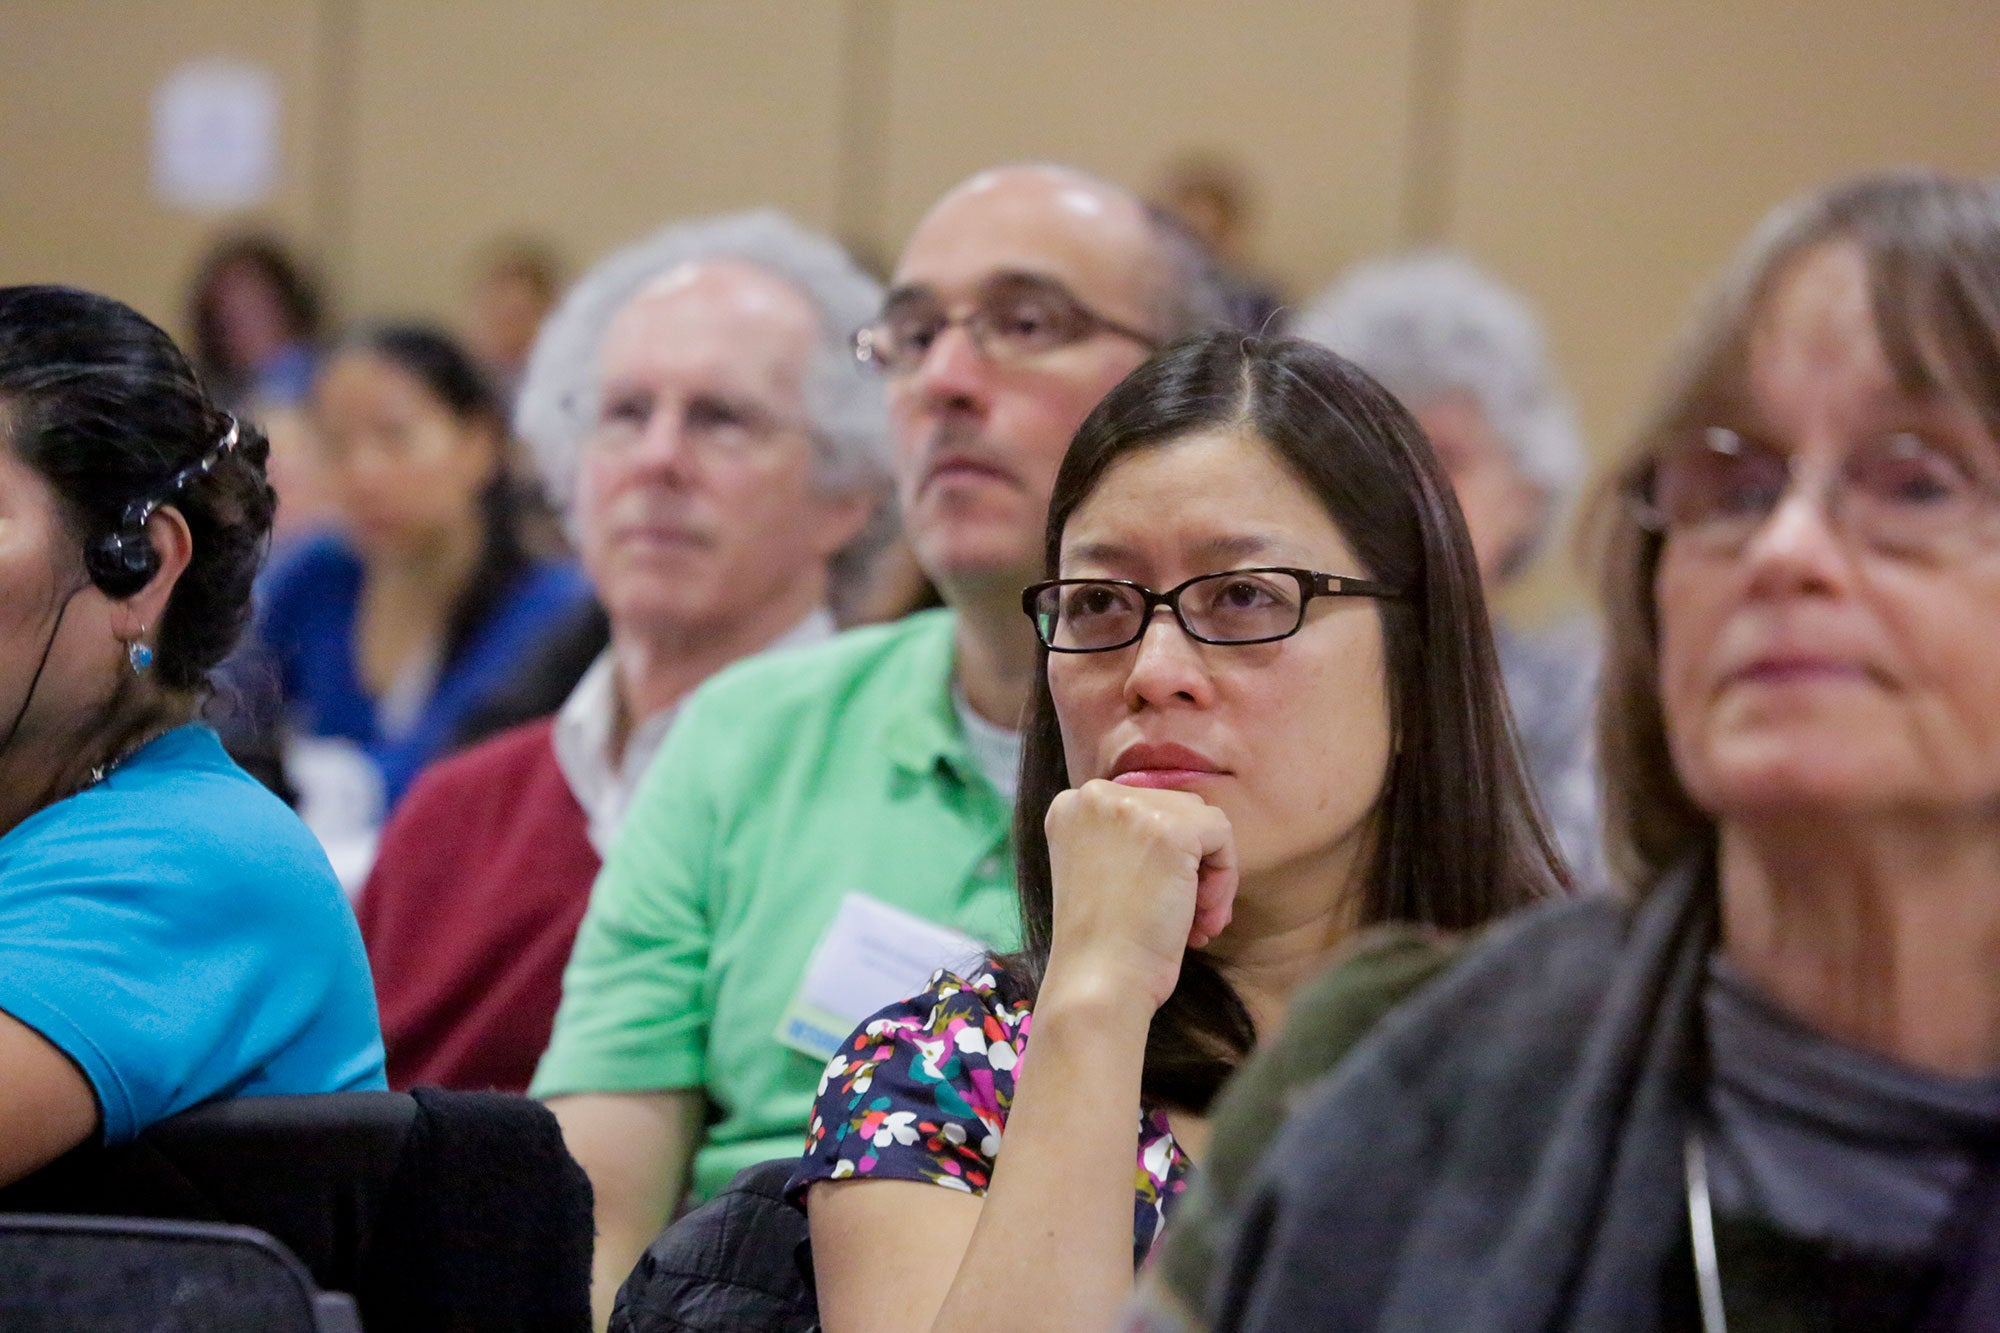 Attendees listened attentively to the residents tell first-person accounts of their housing struggles.